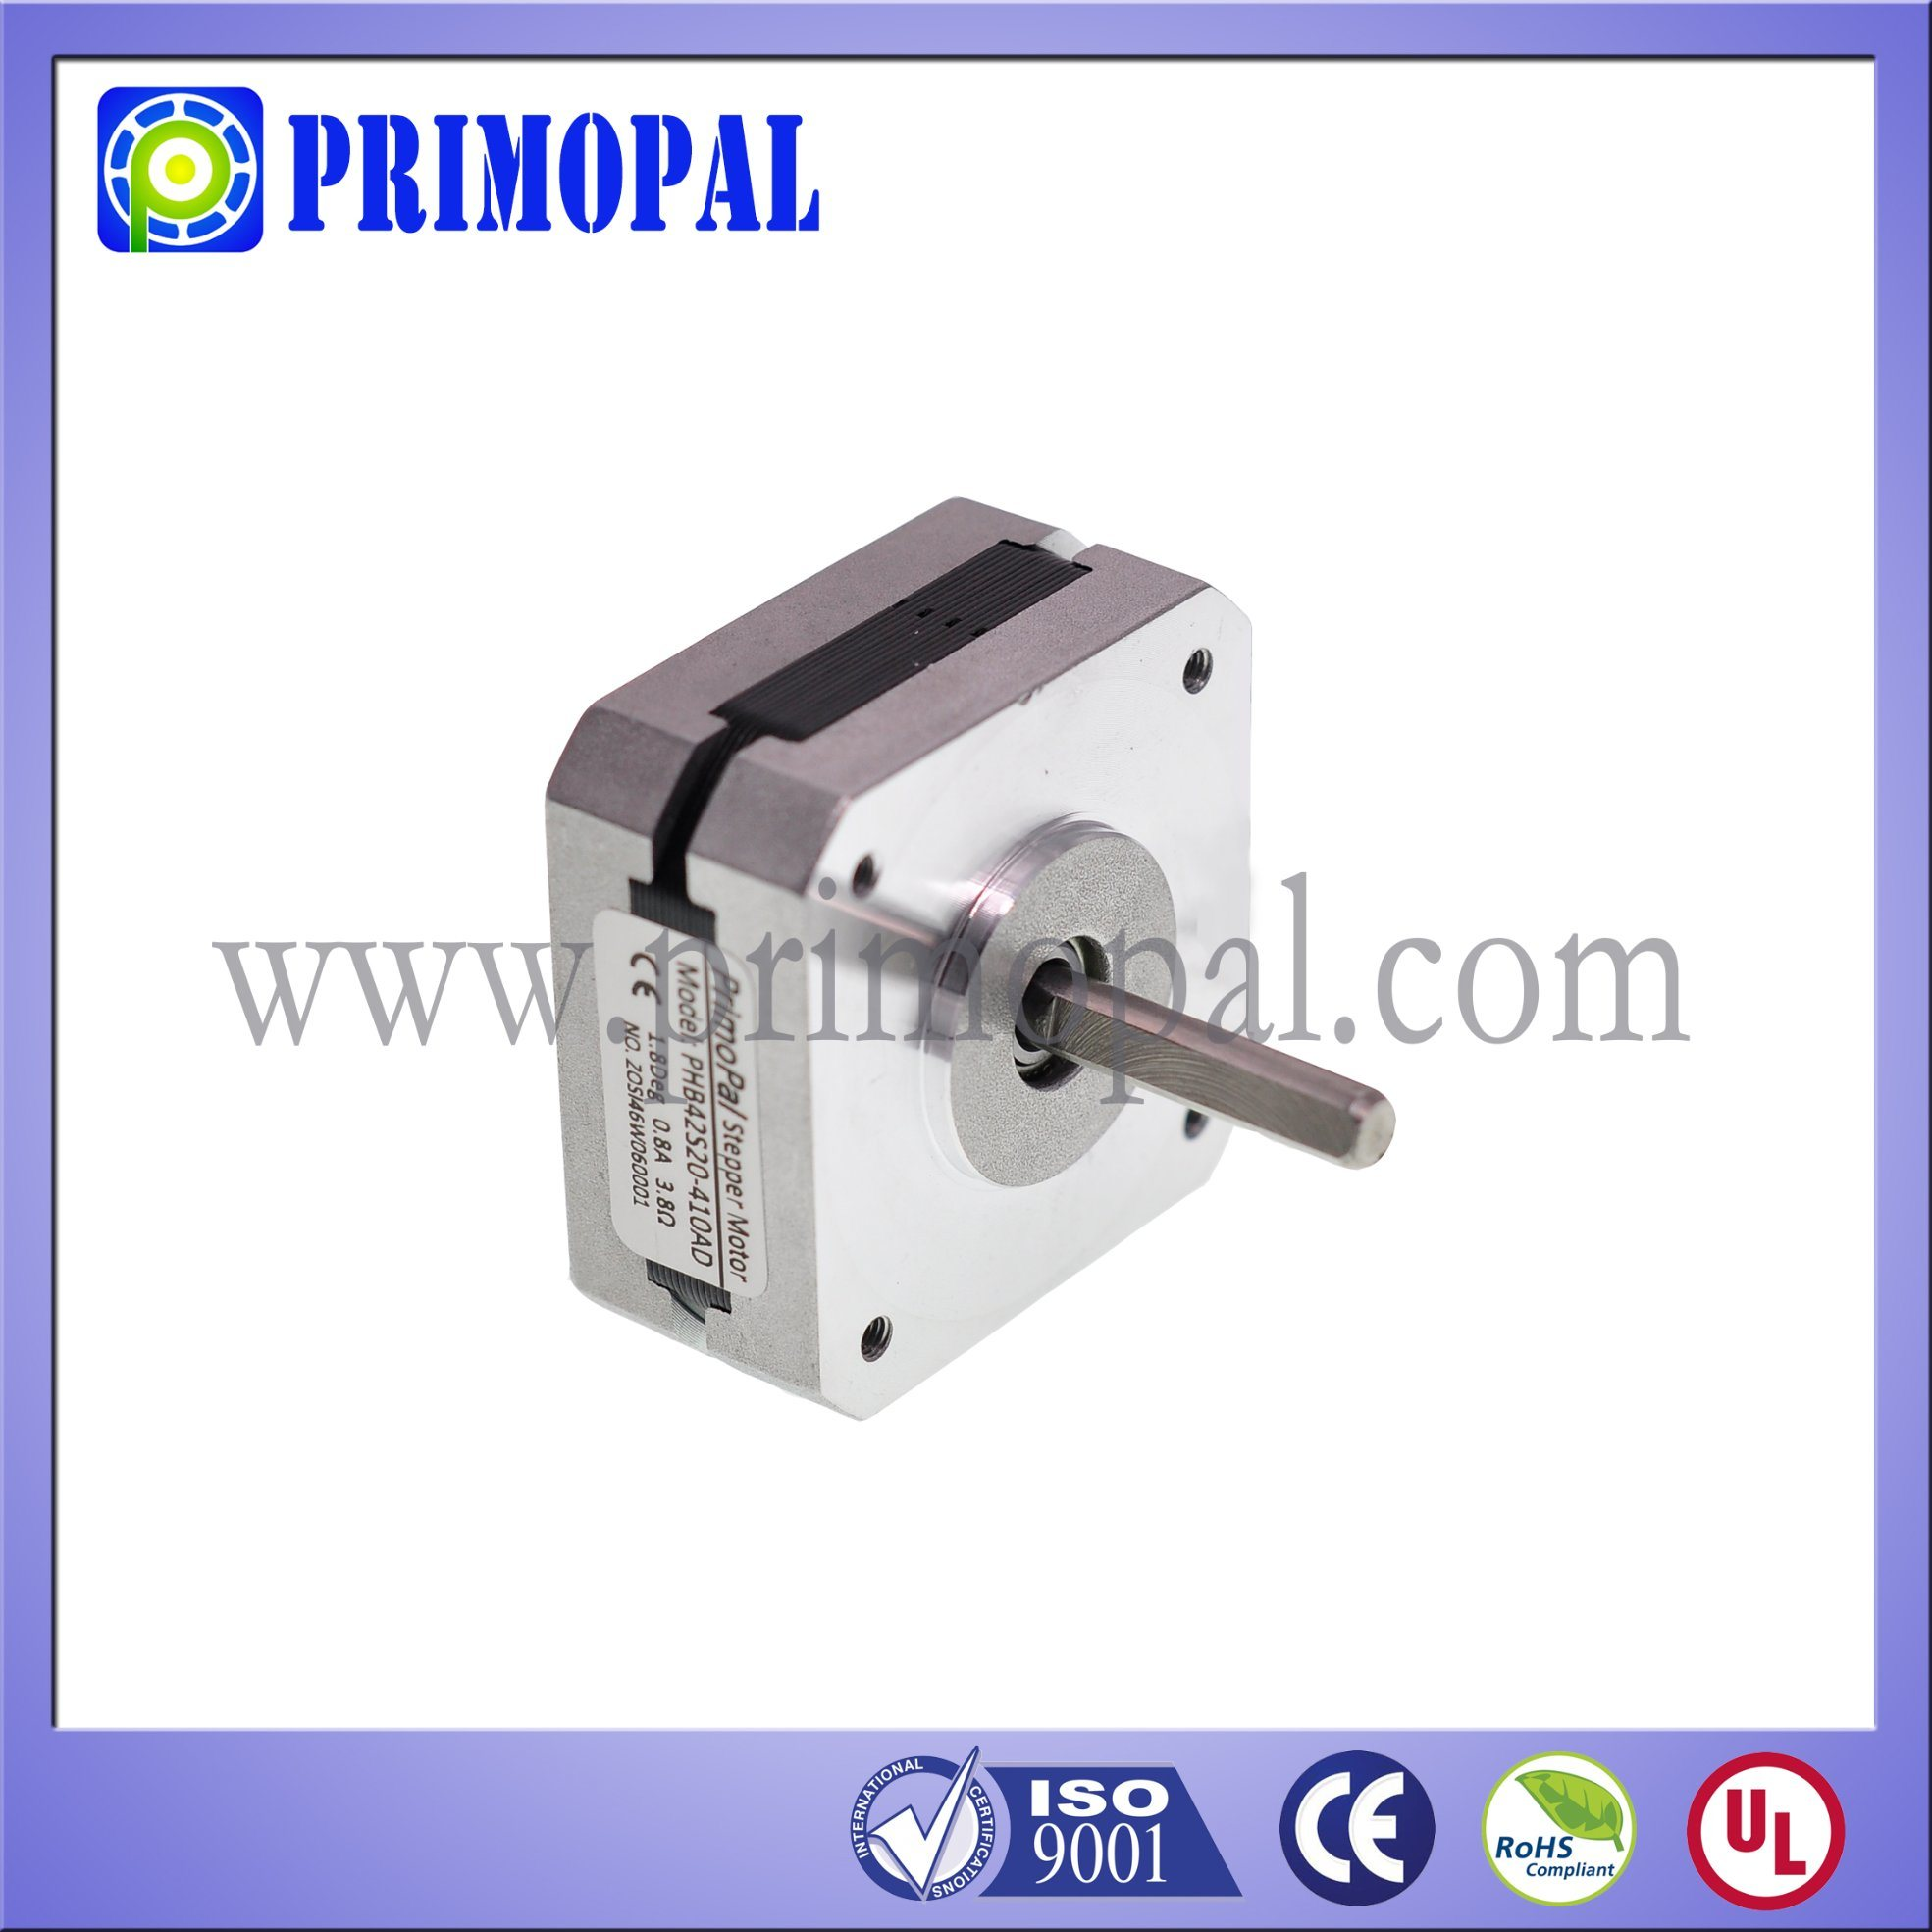 High Precision NEMA 17 Stepper Motor for CNC Applications